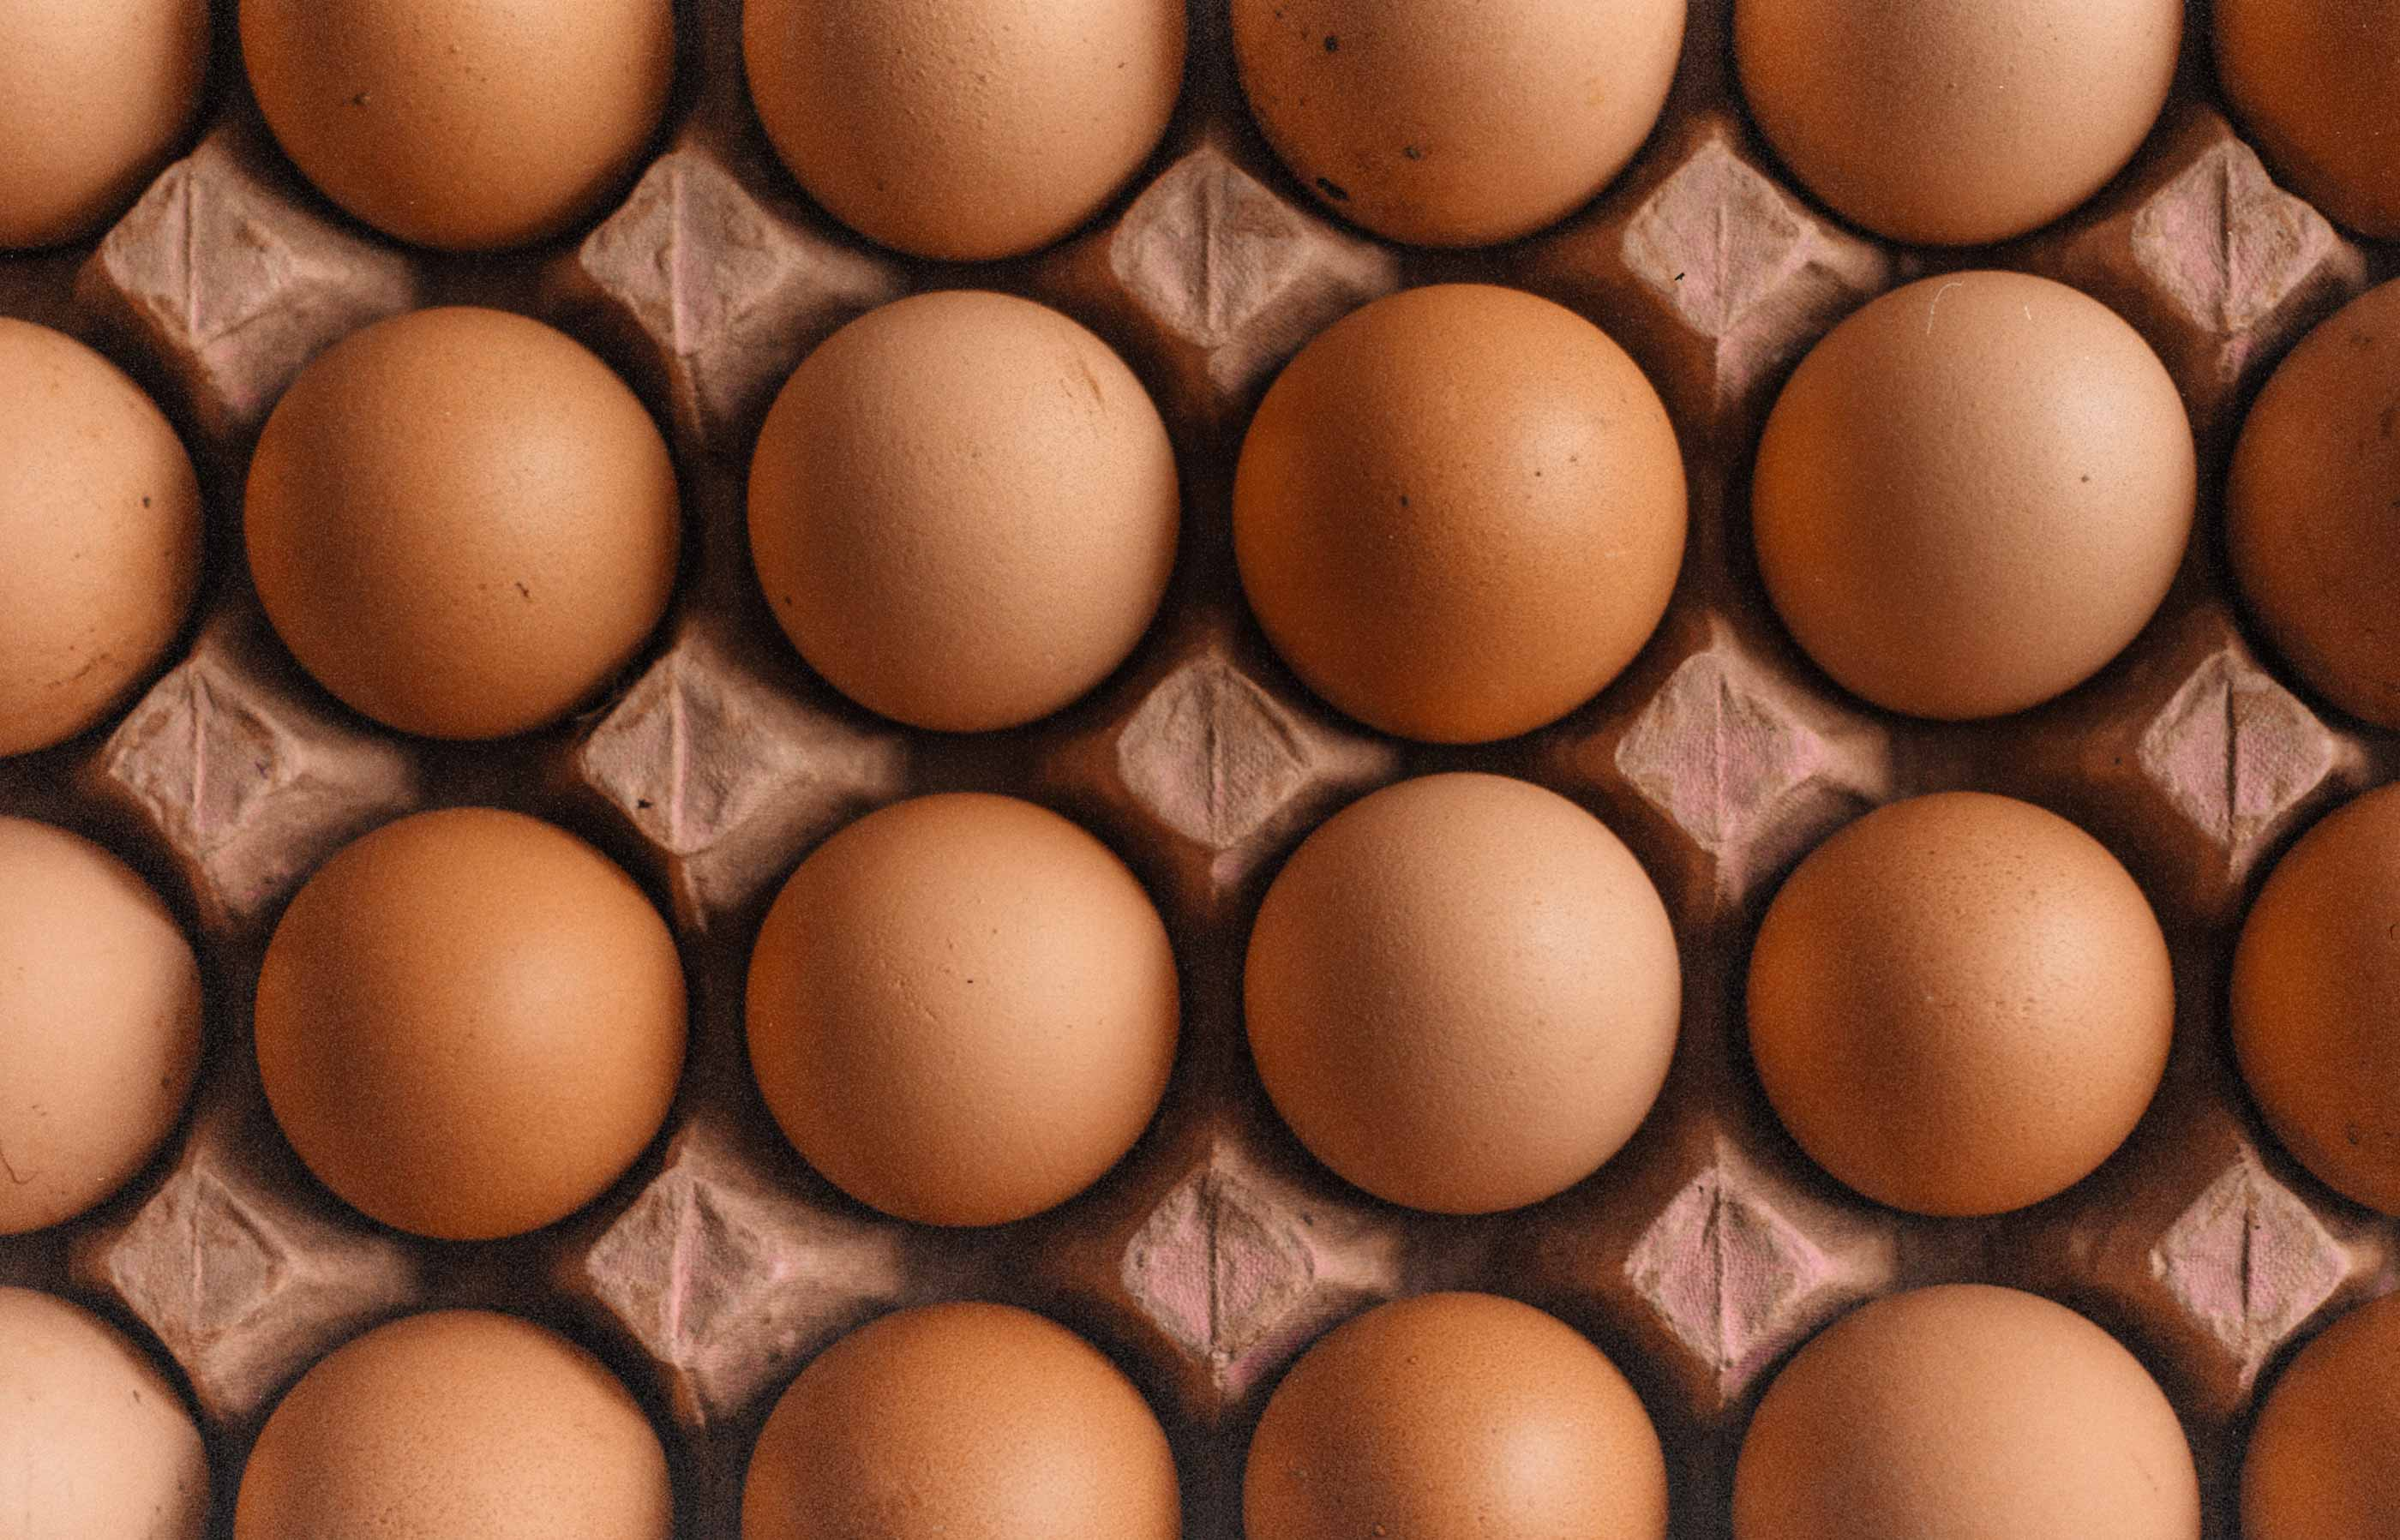 What are good high-protein foods for breakfast?